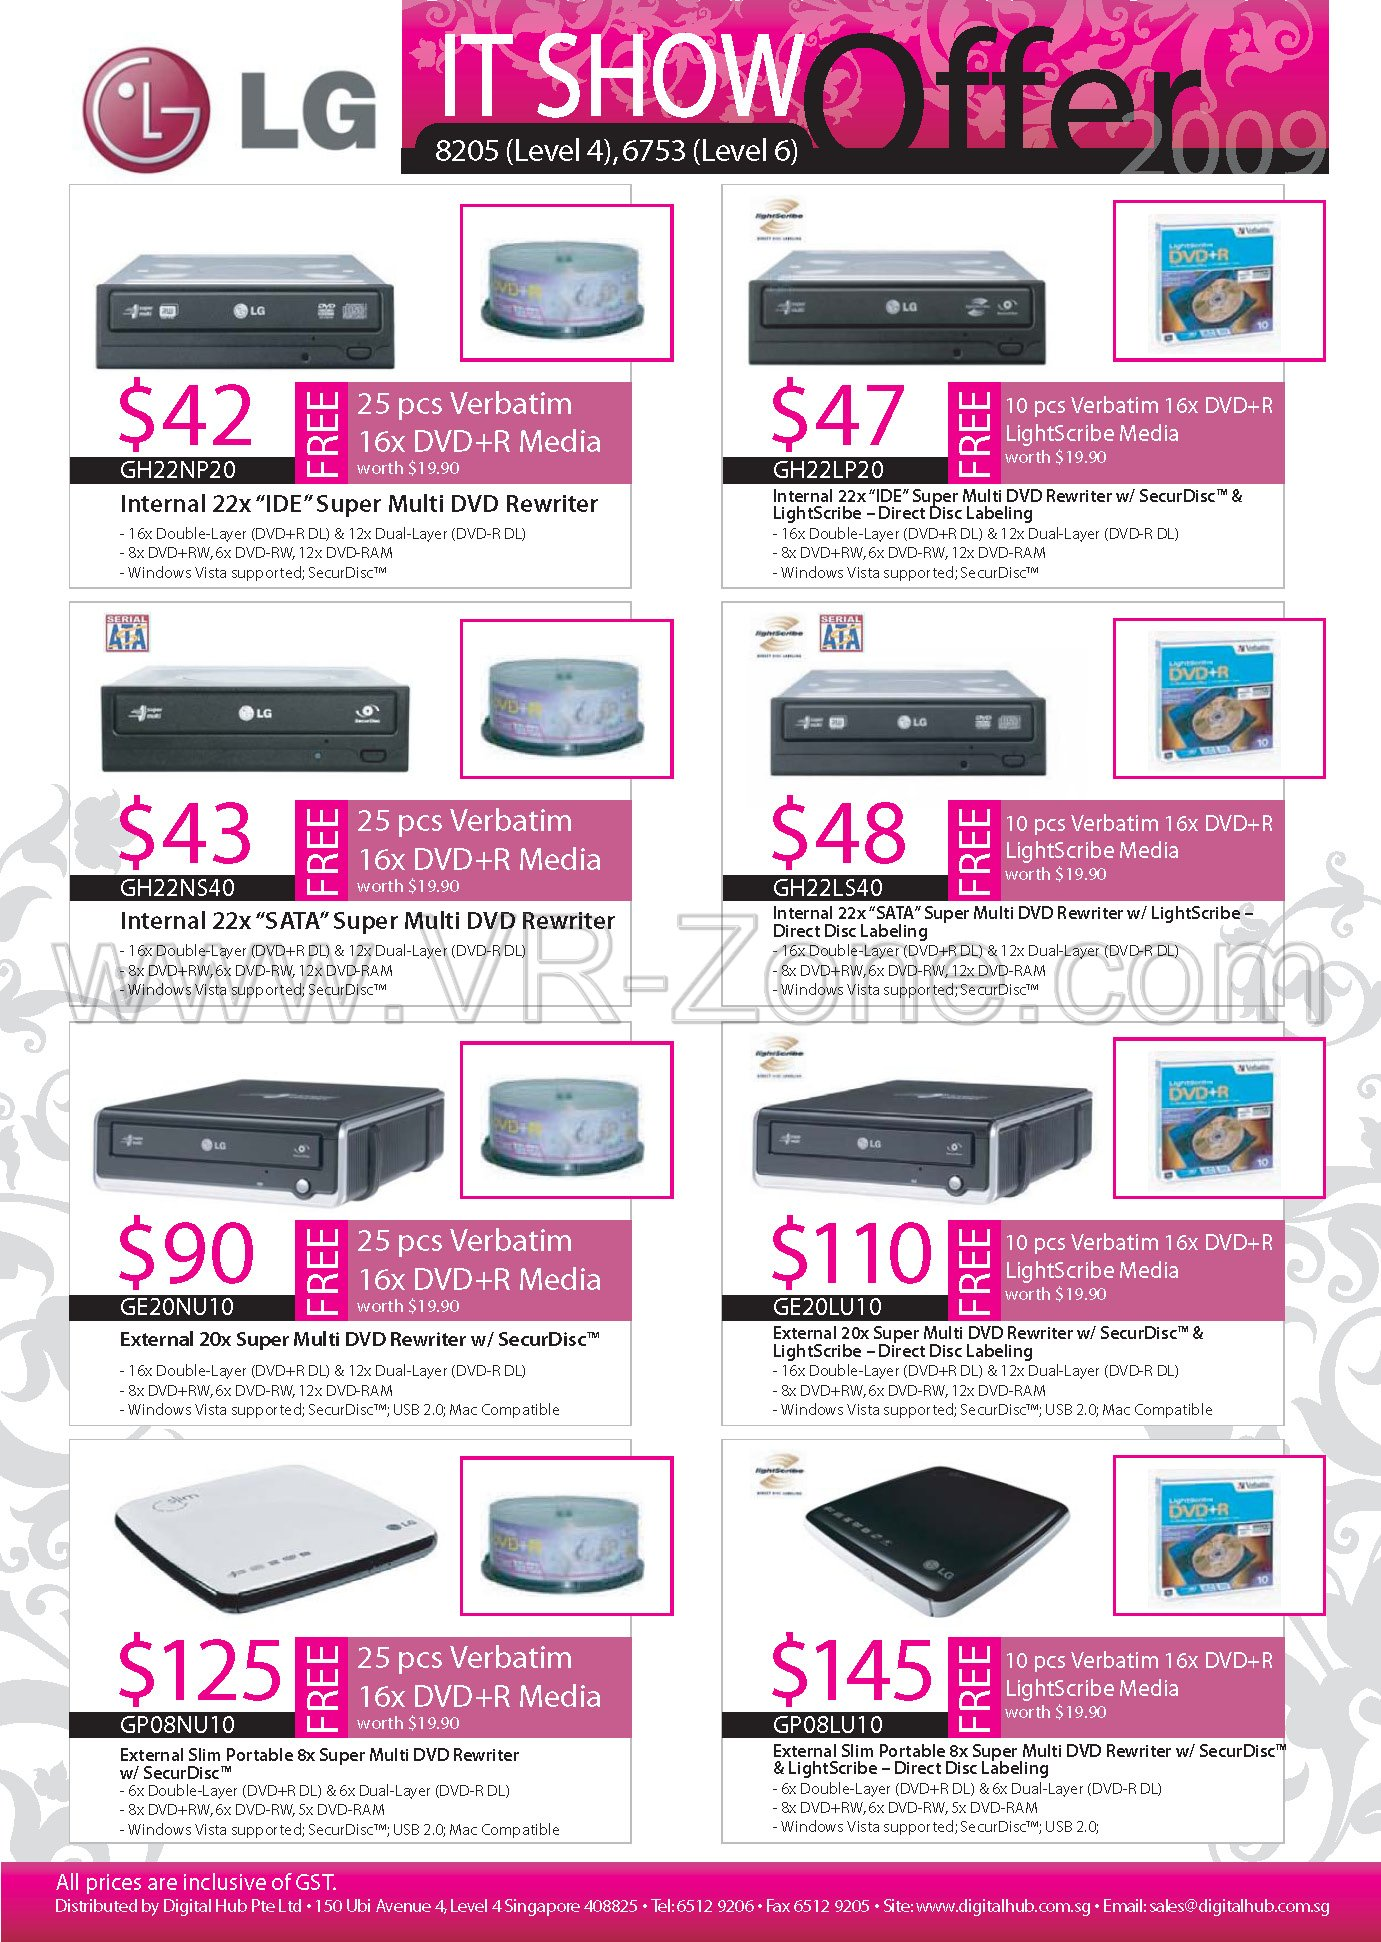 IT Show 2009 price list image brochure of LG DVD VR-Zone